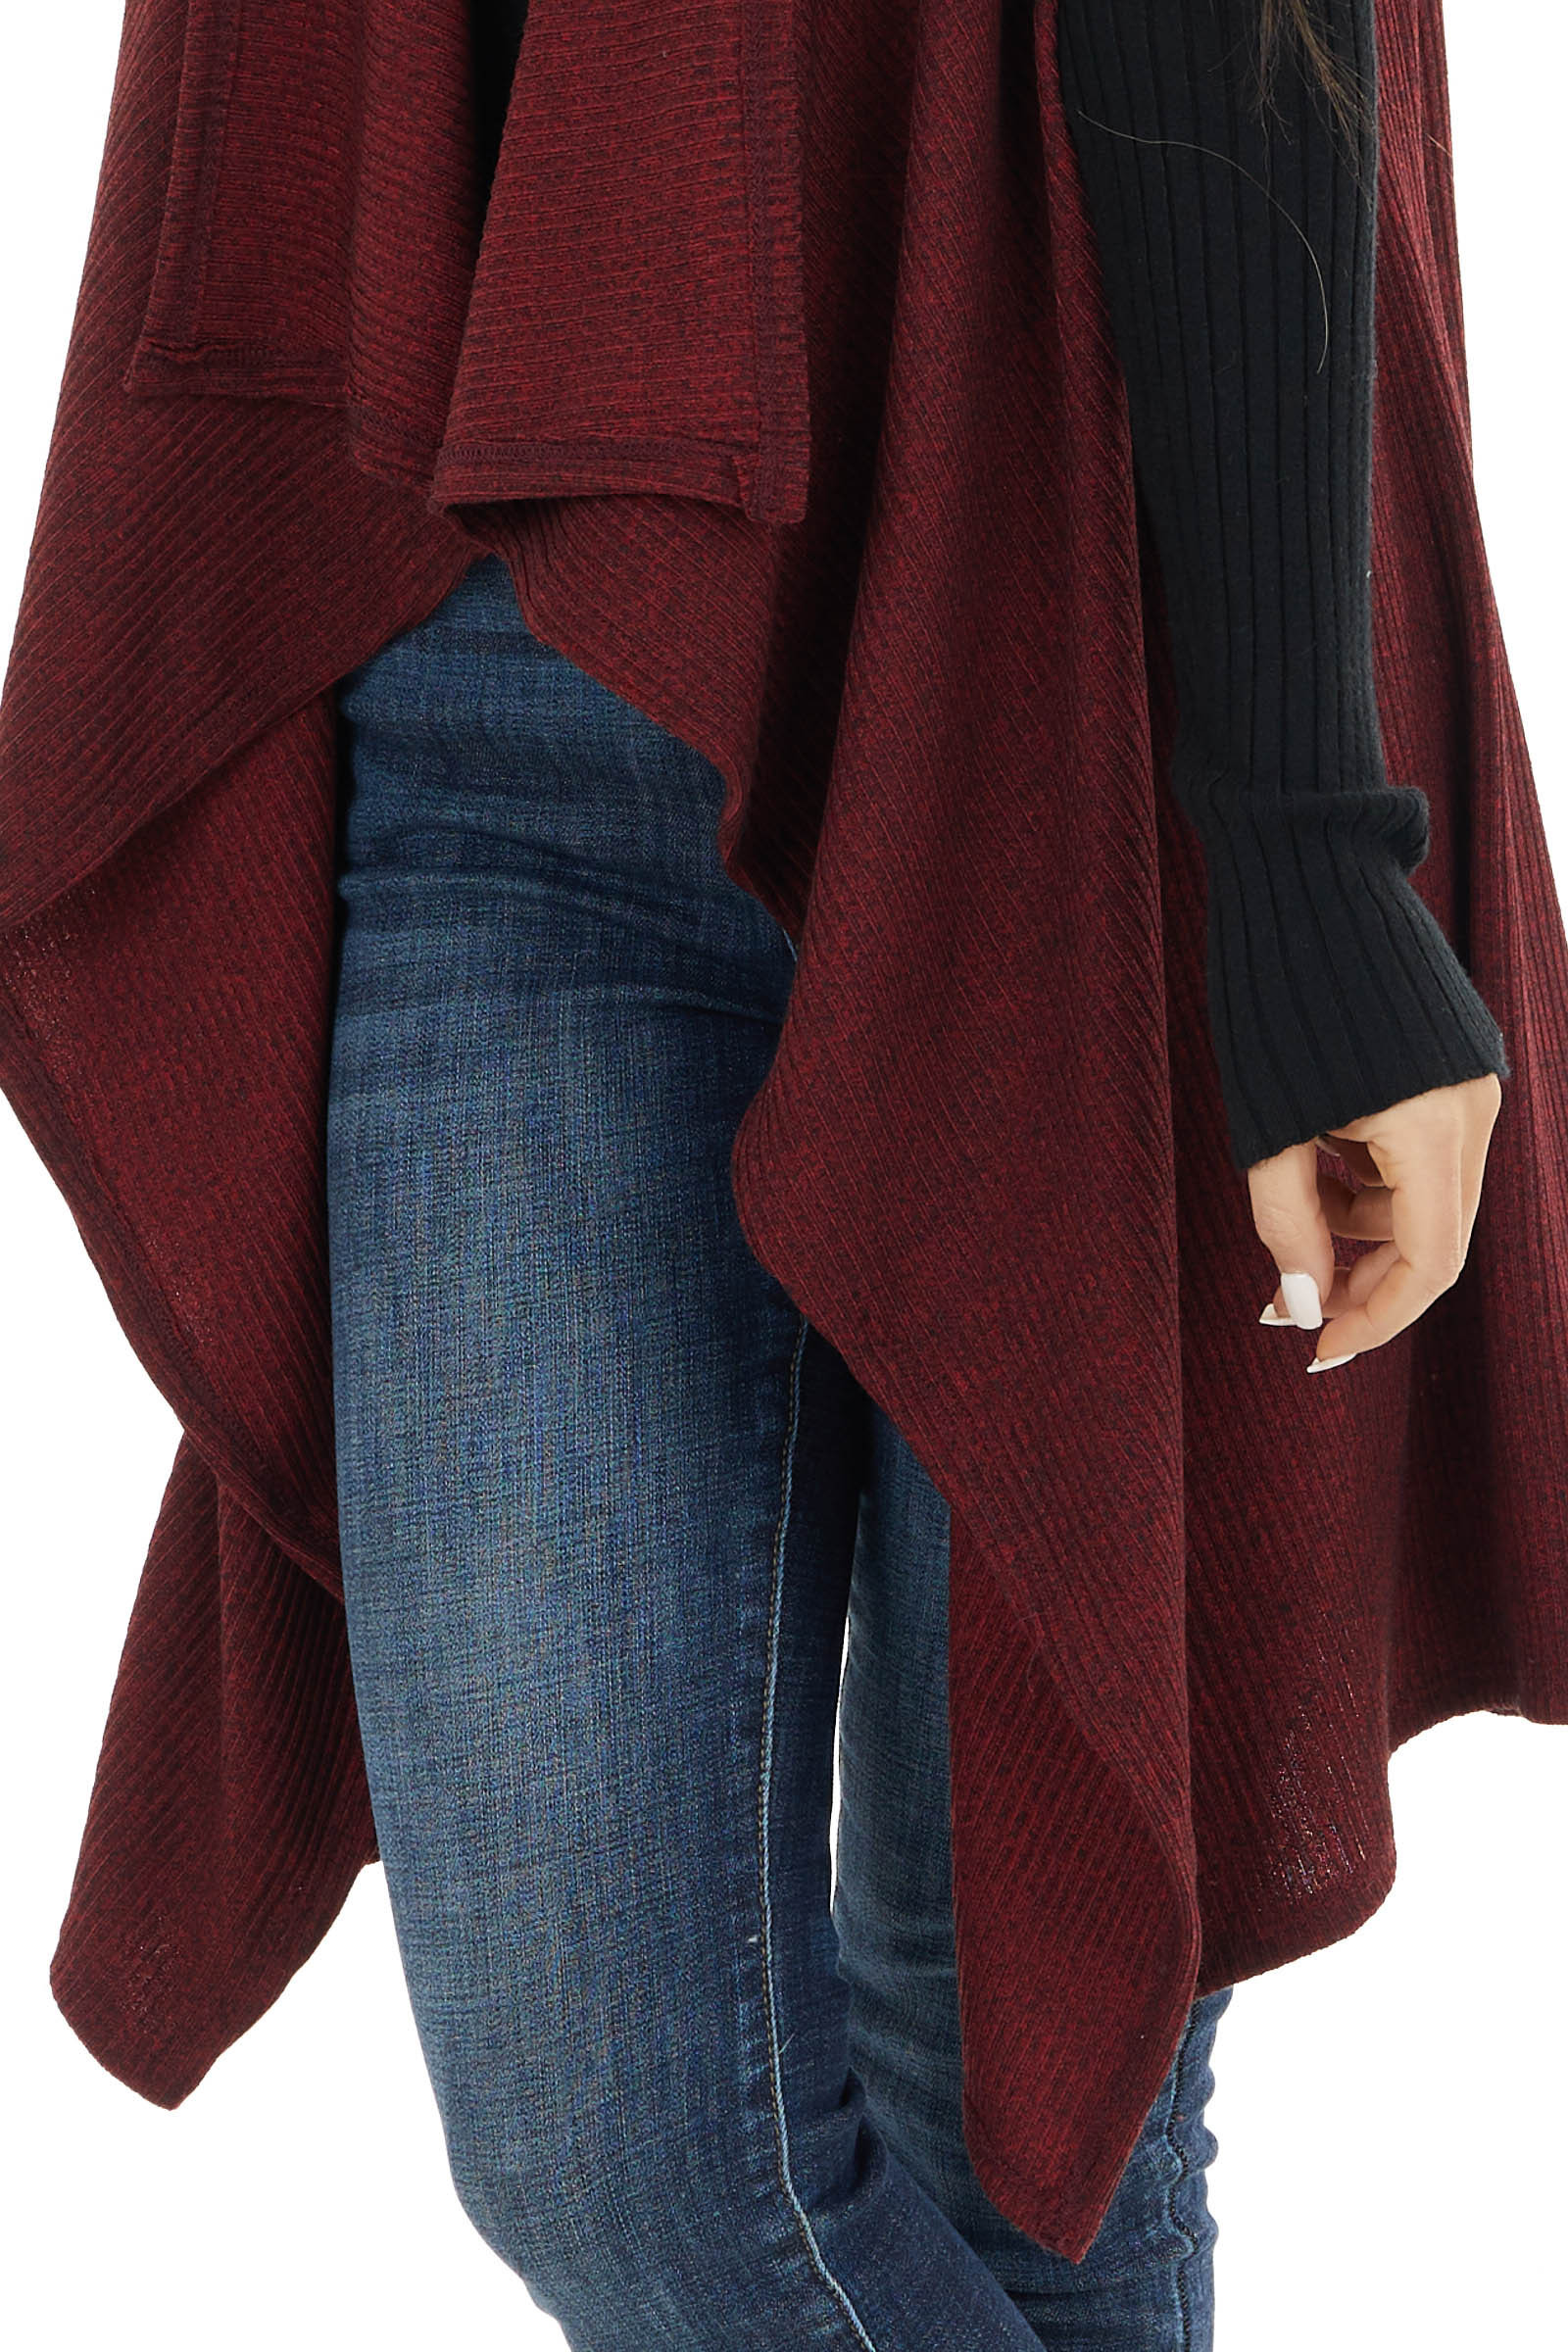 Burgundy Ribbed Knit Open Front Vest with Lapels